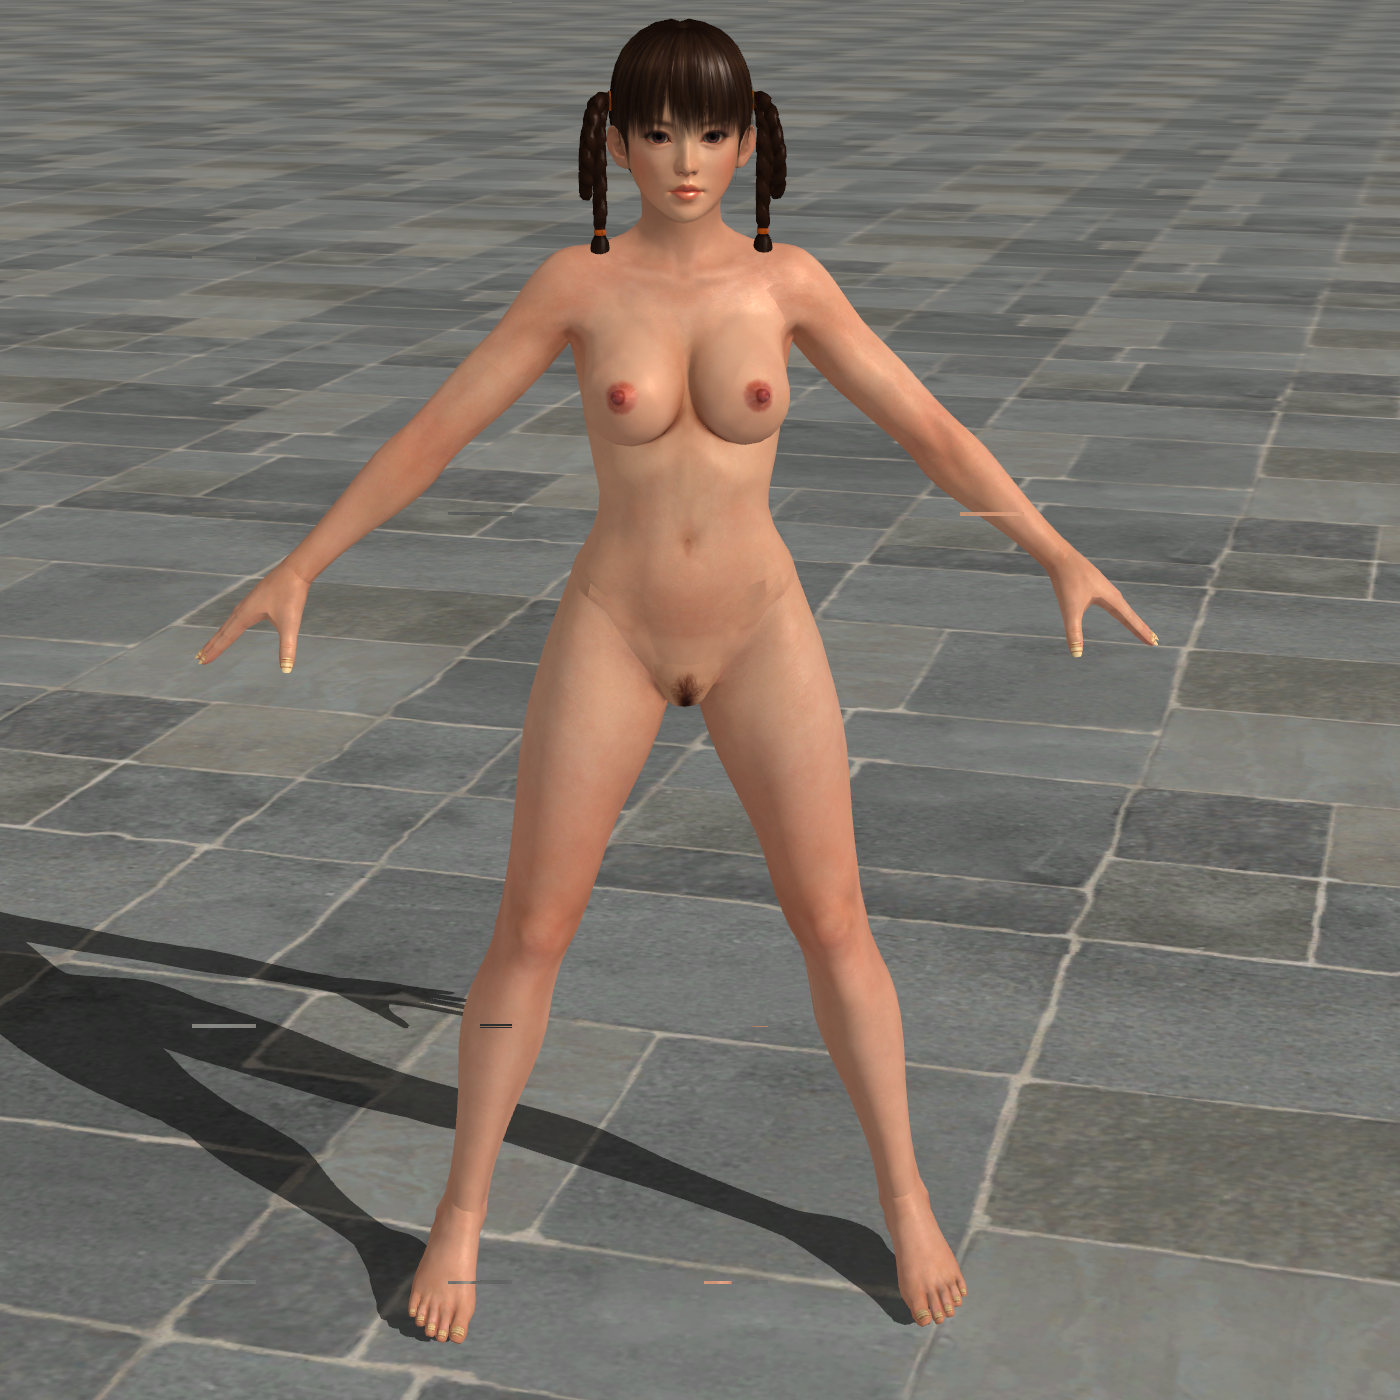 Doa 5 leifang naked naked picture